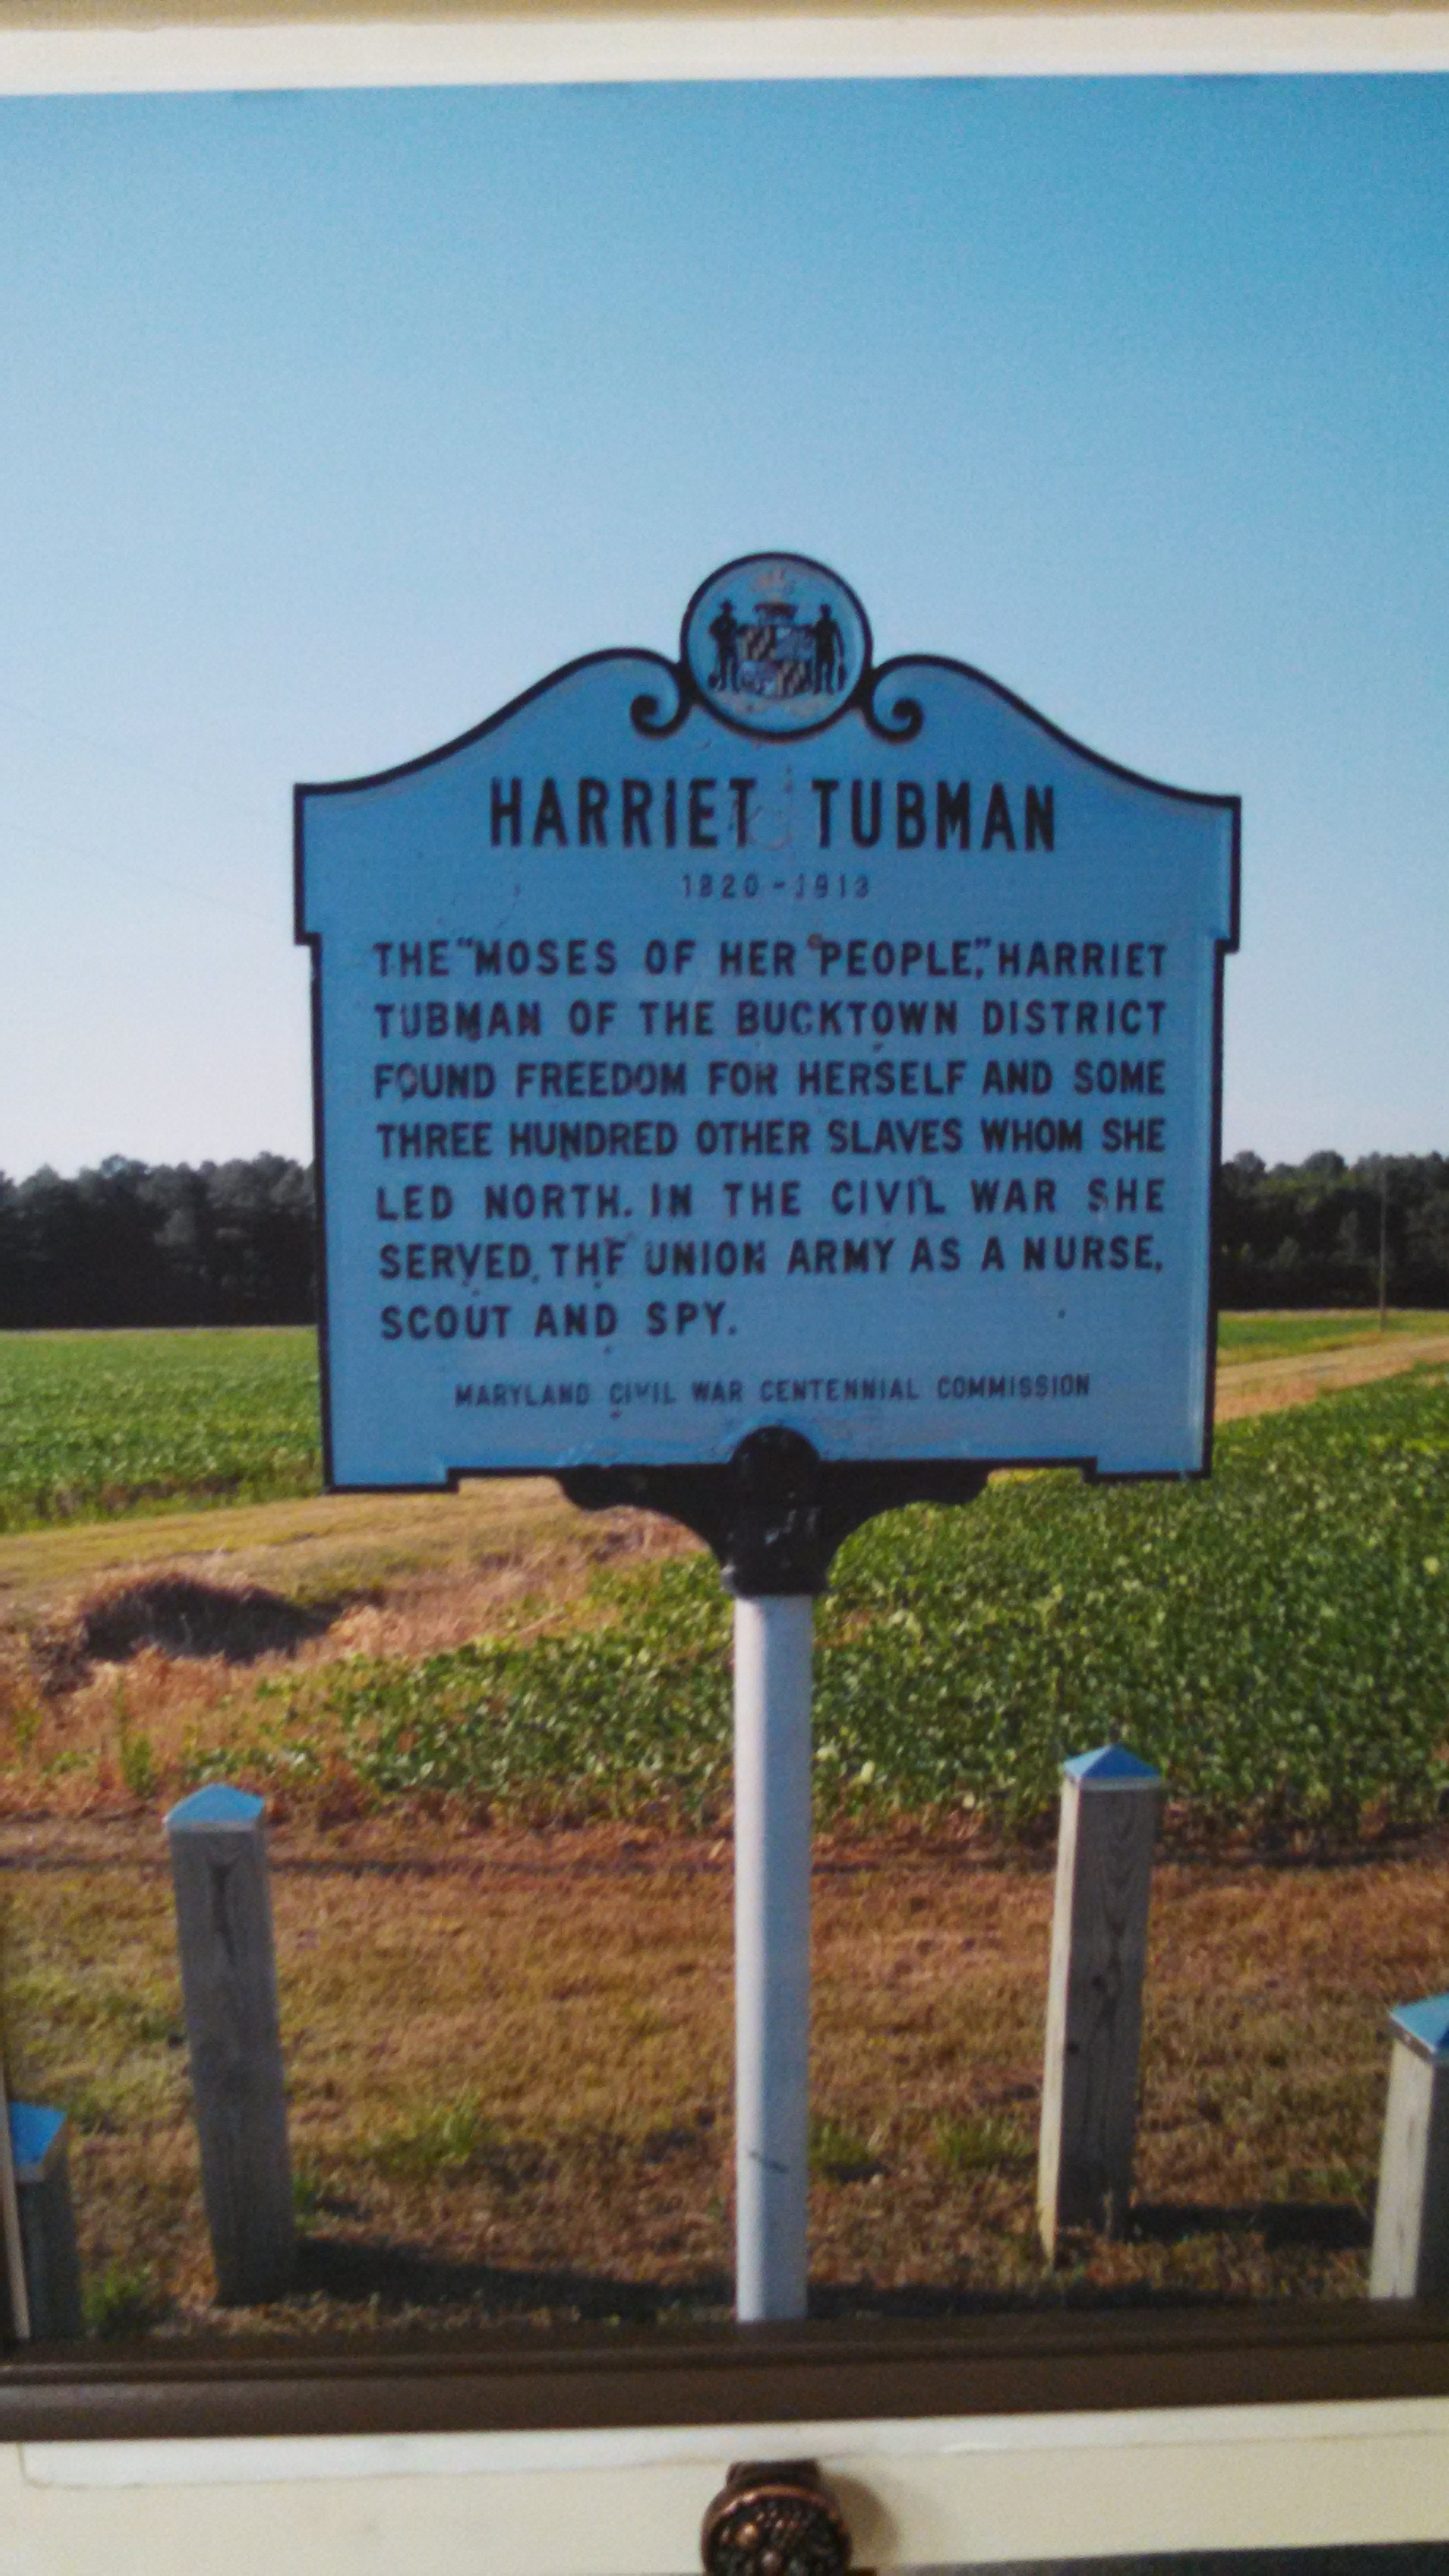 harriet tubman educational center all things fulfilling 20141030 134937 248 there is already the harriet tubman